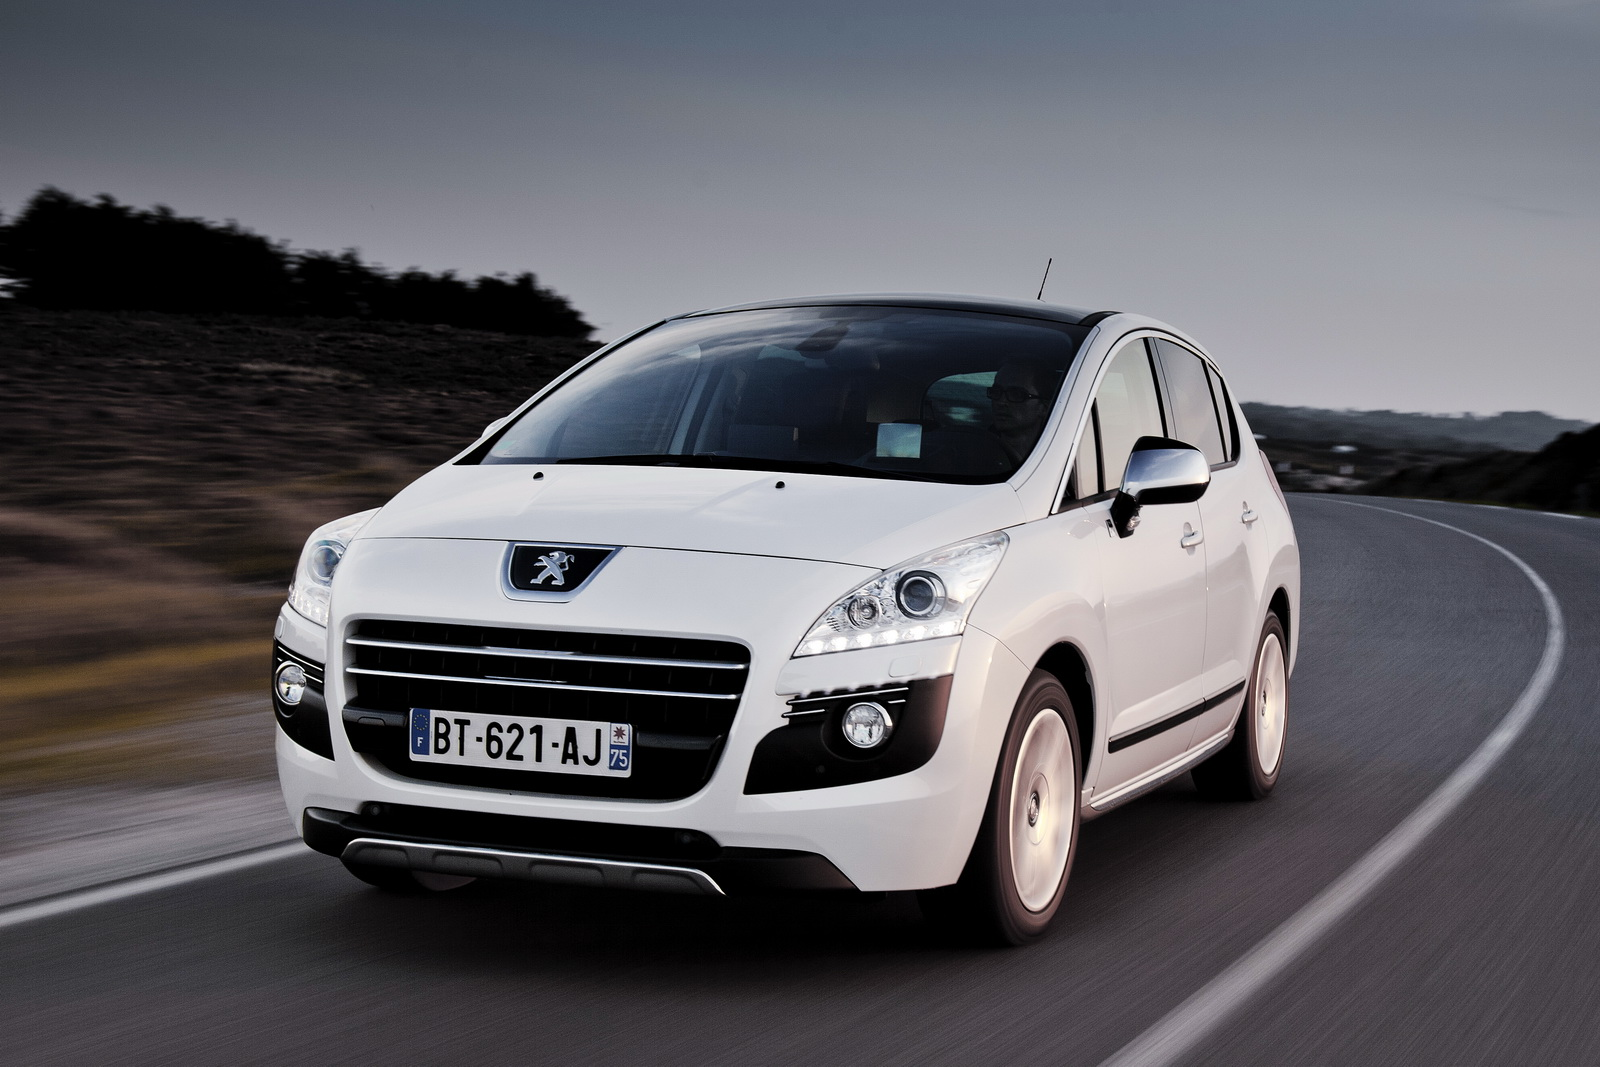 peugeot 3008 hybrid4 emissions lowered to 91 g km of co2 autoevolution. Black Bedroom Furniture Sets. Home Design Ideas